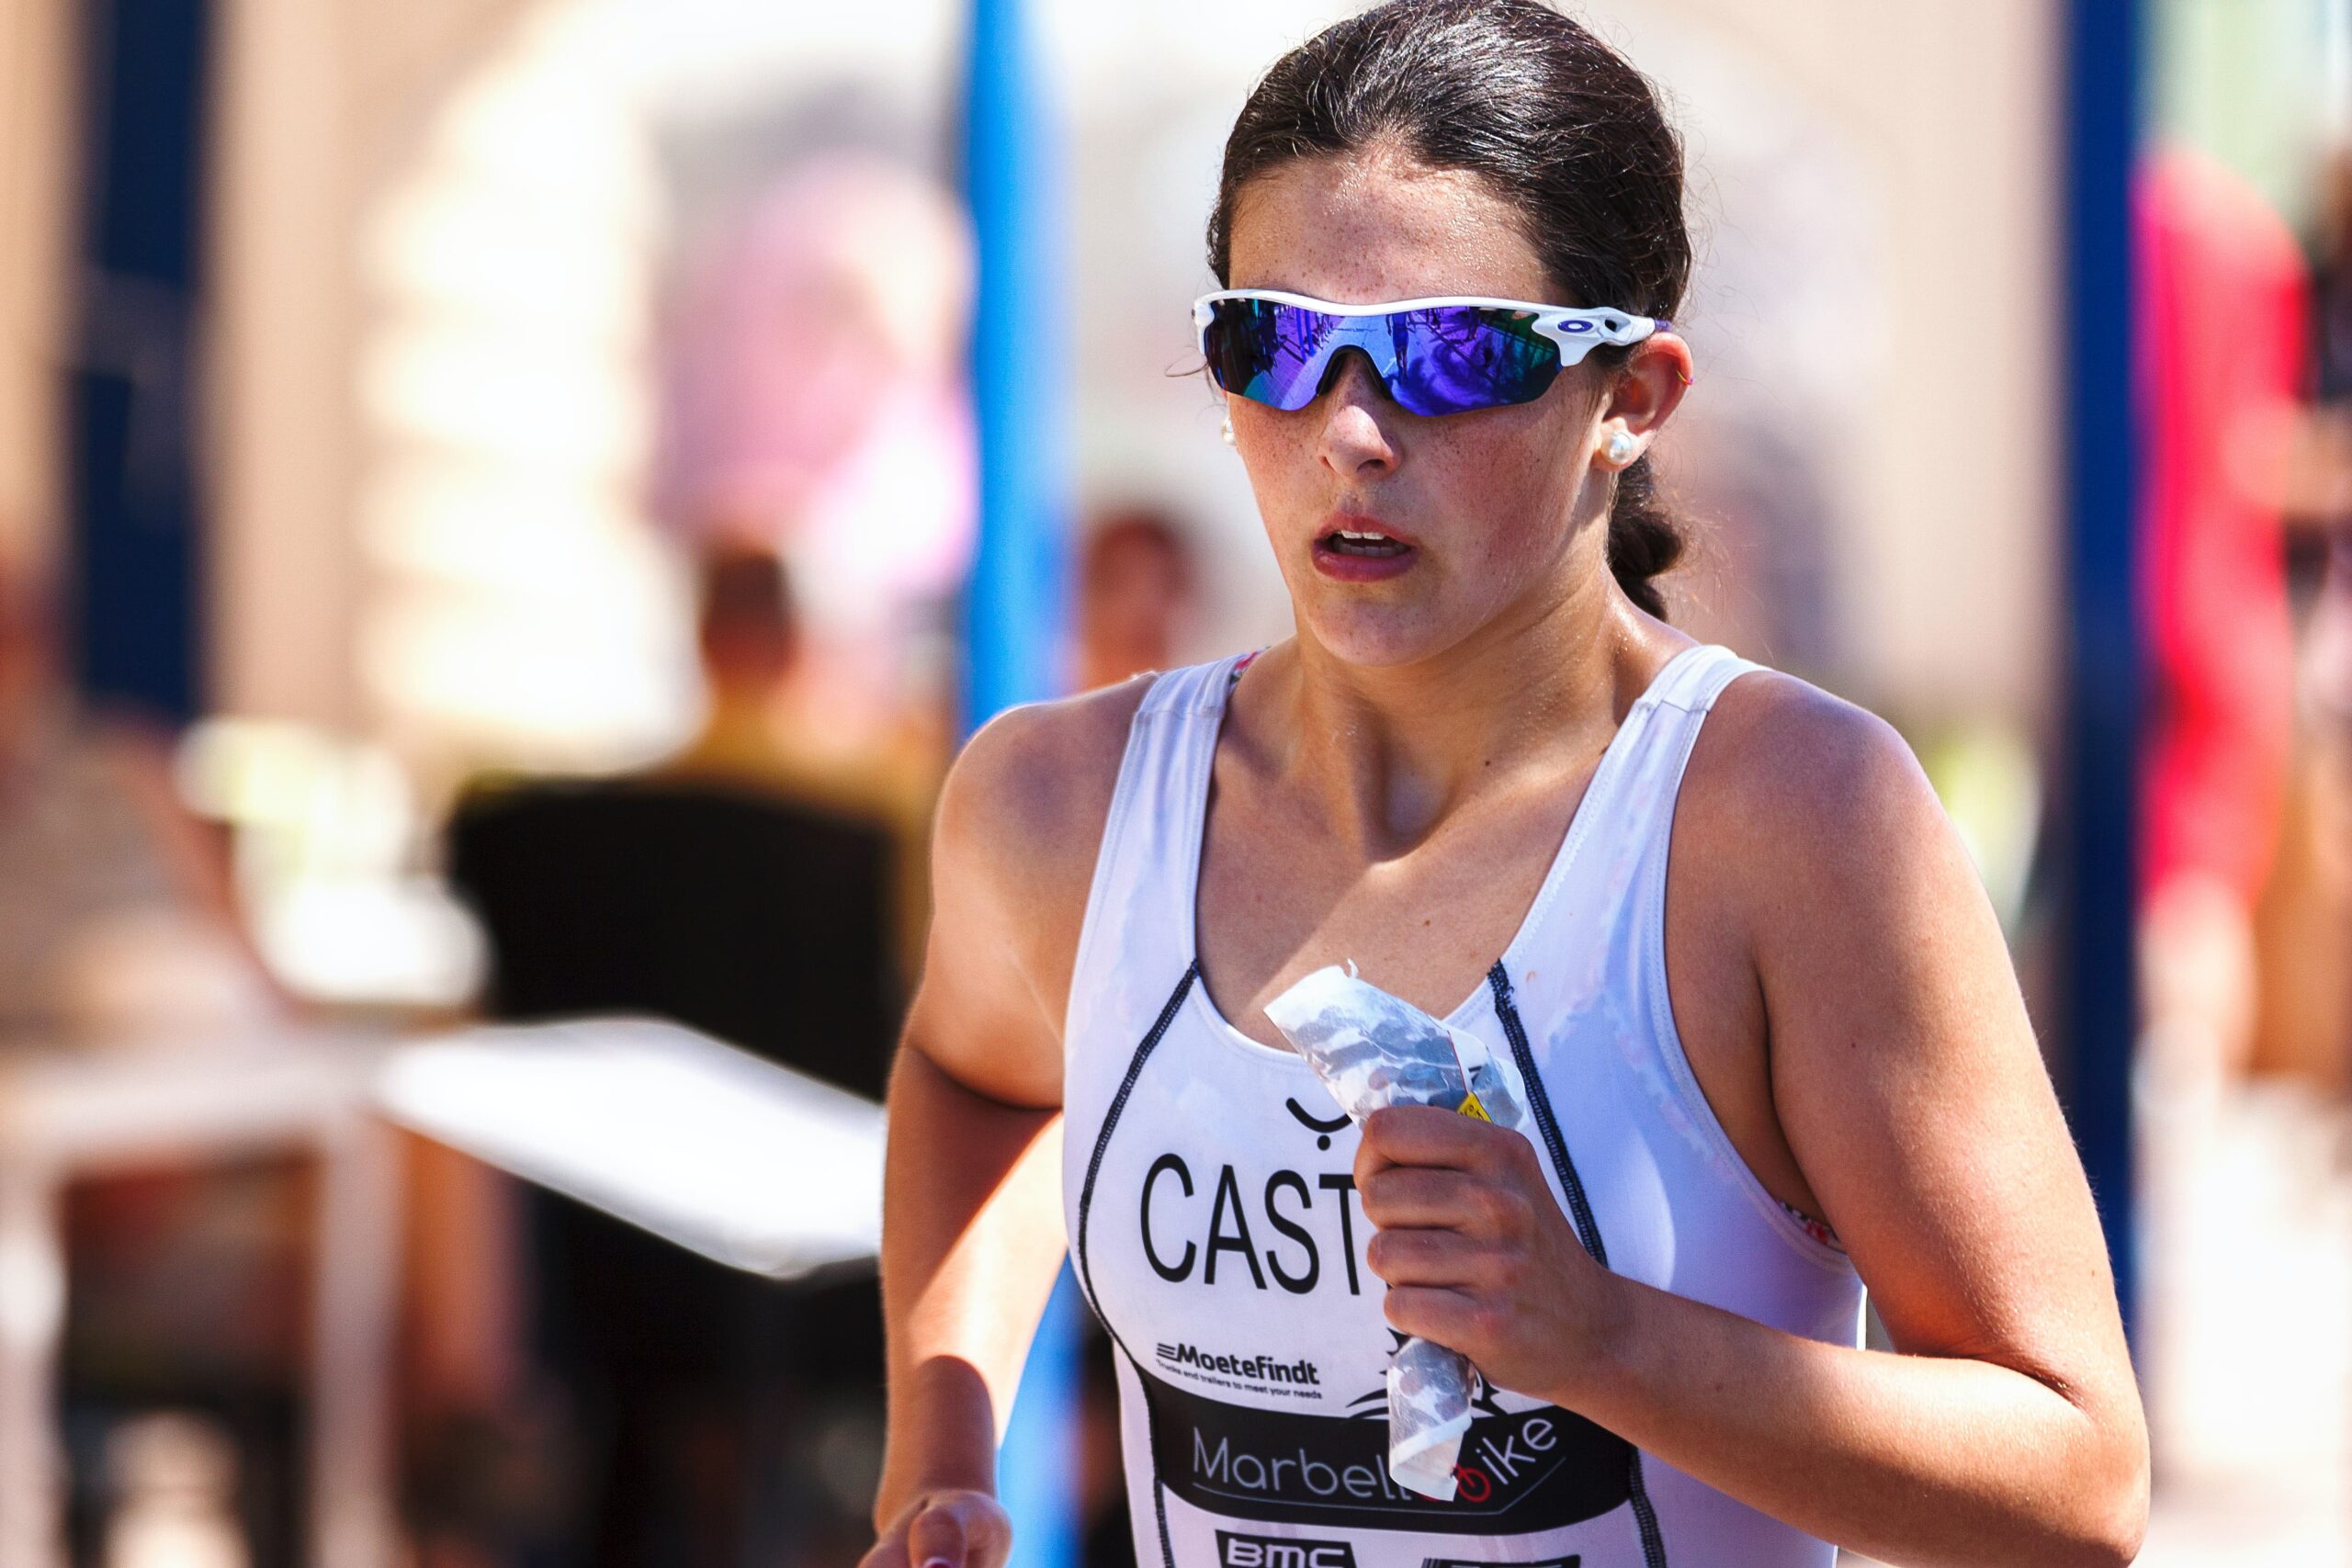 woman running race scaled